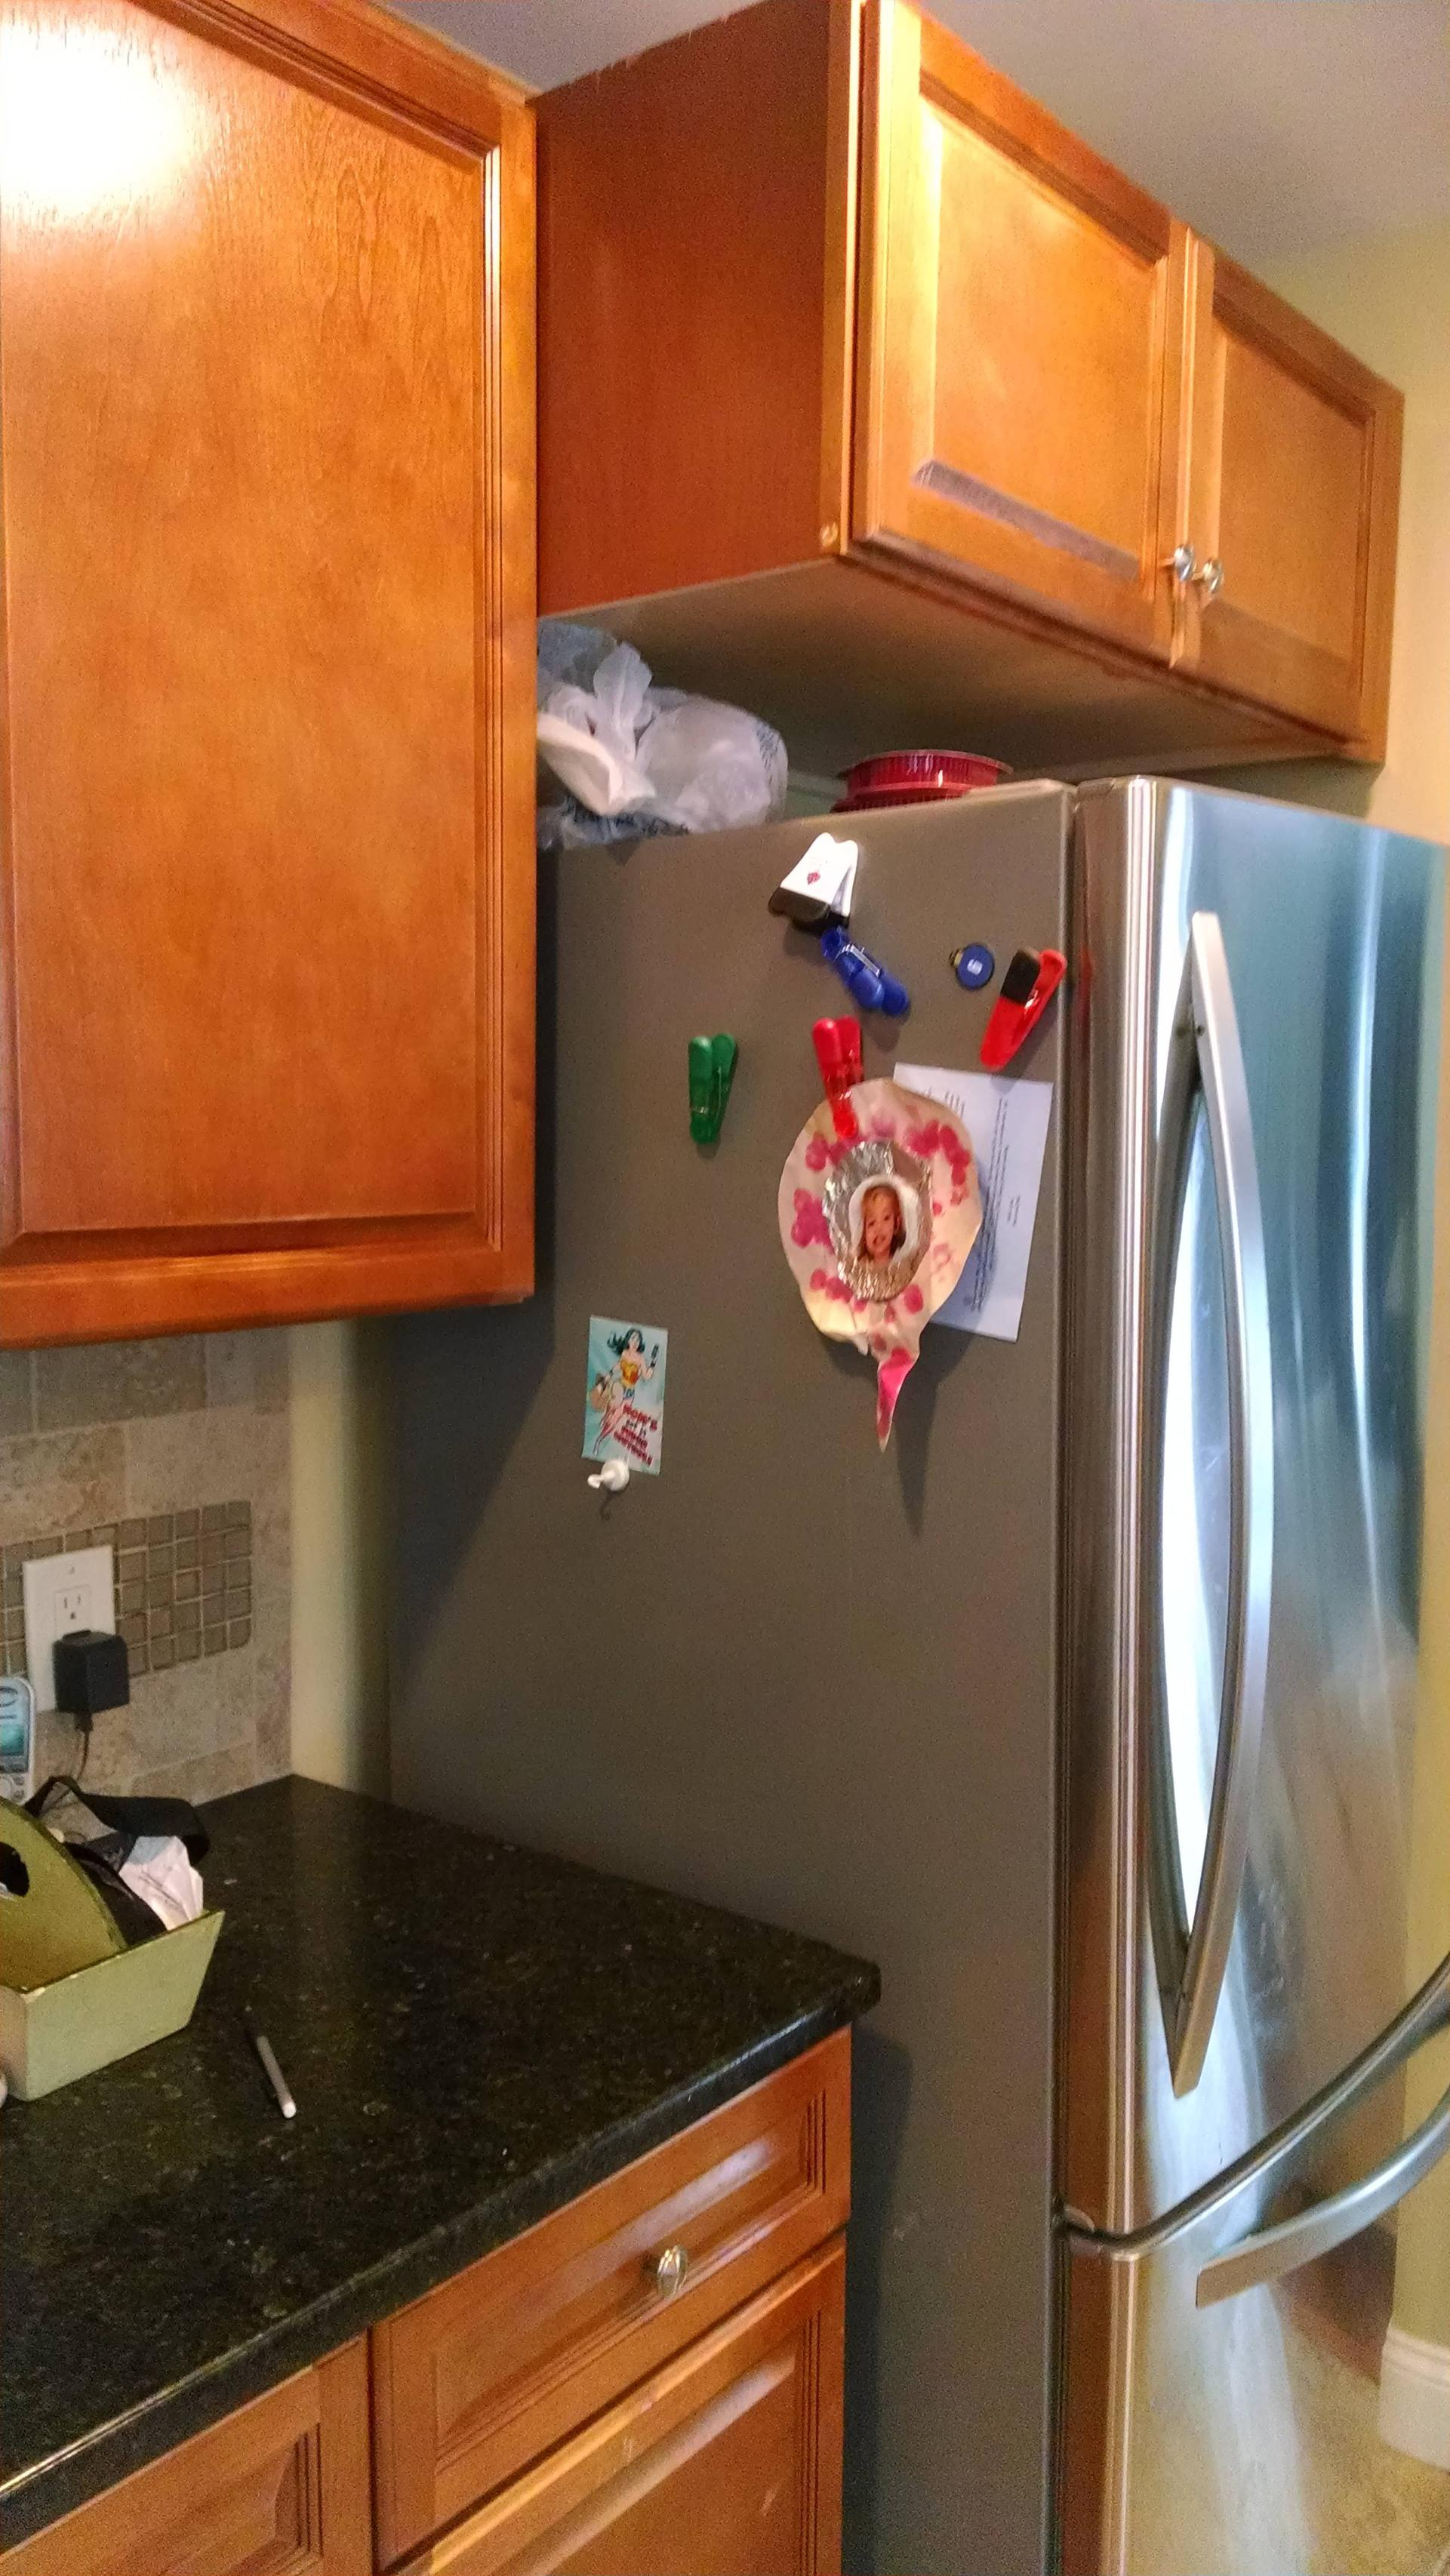 Carpentry Altering The Depth Of A Kitchen Cabinet Home